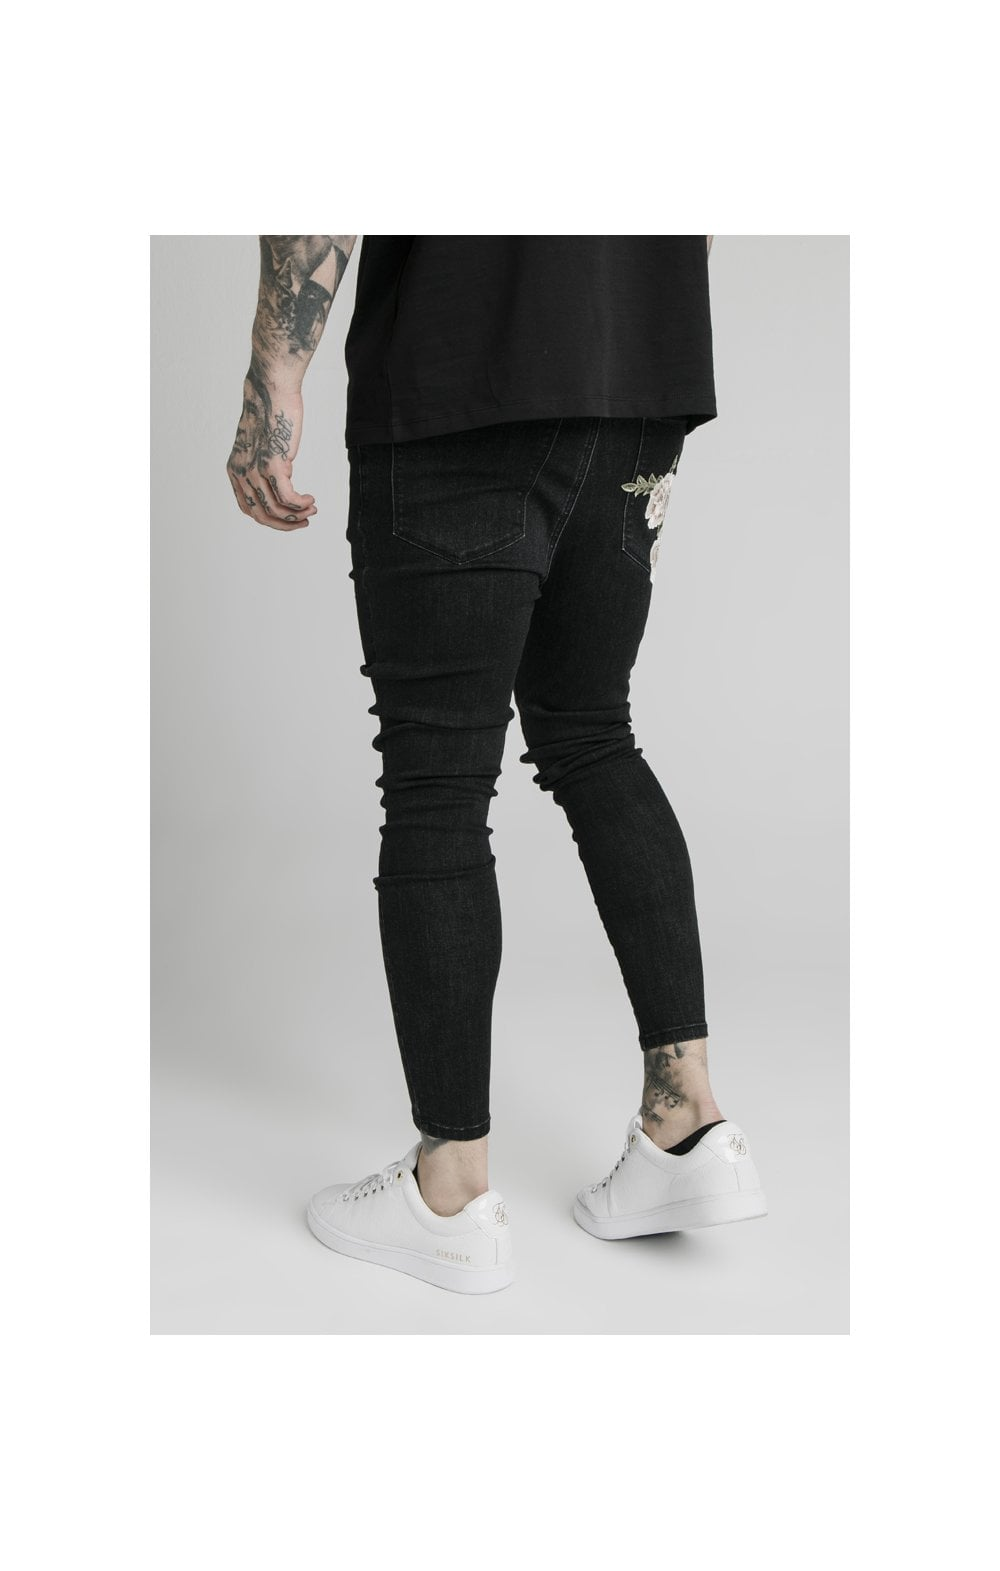 SikSilk Drop Crotch Pleated Appliqu Denims - Black (1)